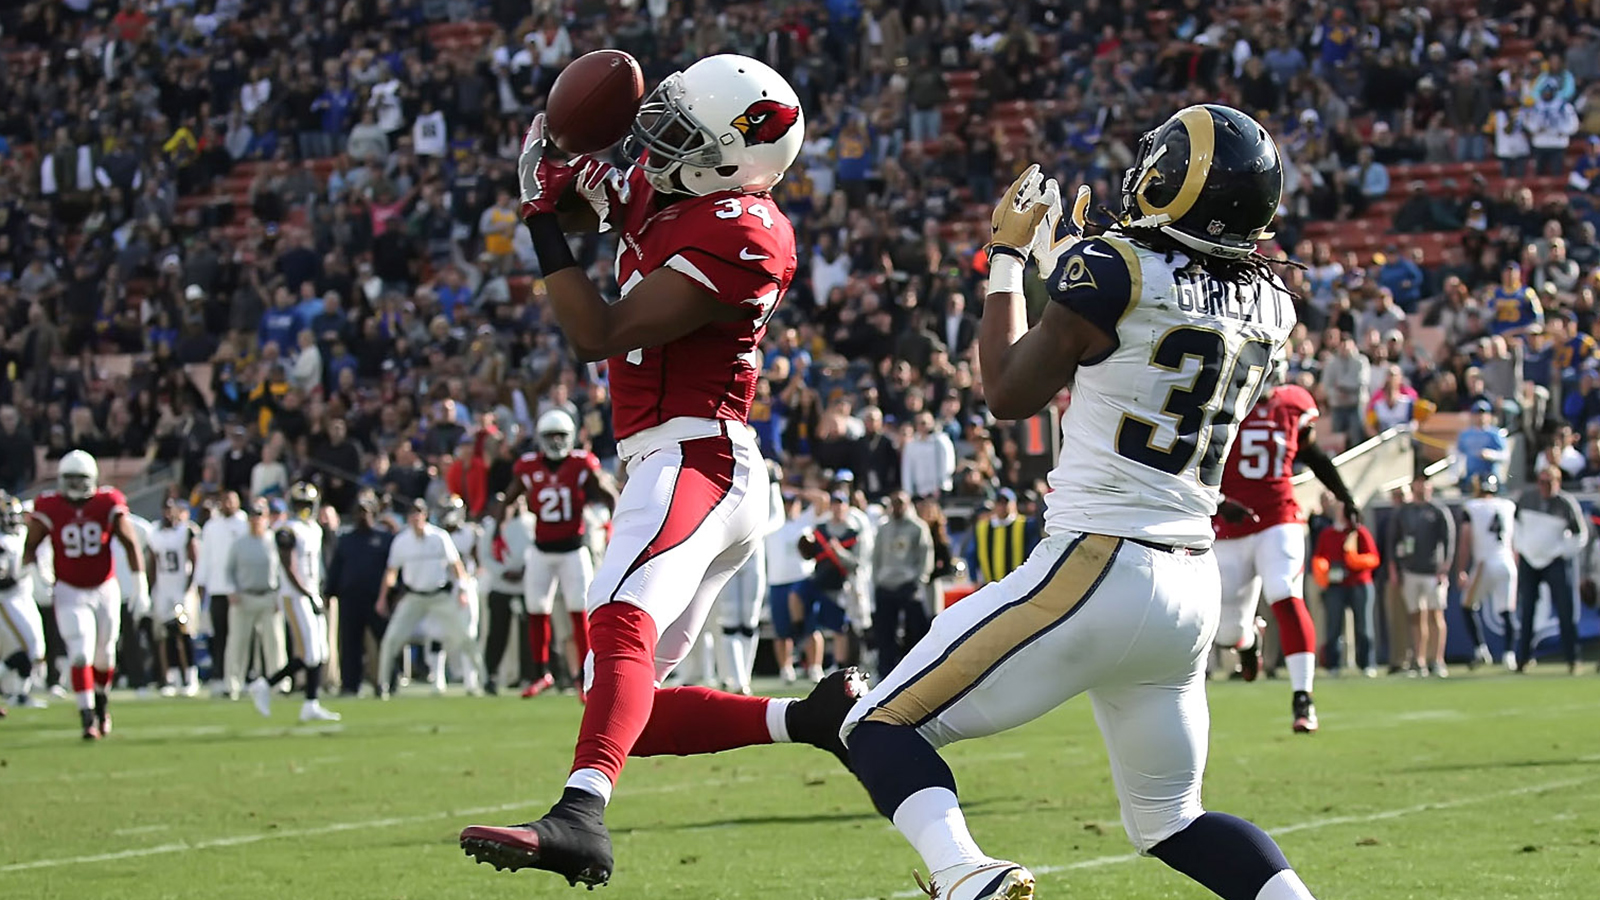 Cardinals close disappointing season on high note with blowout of Rams